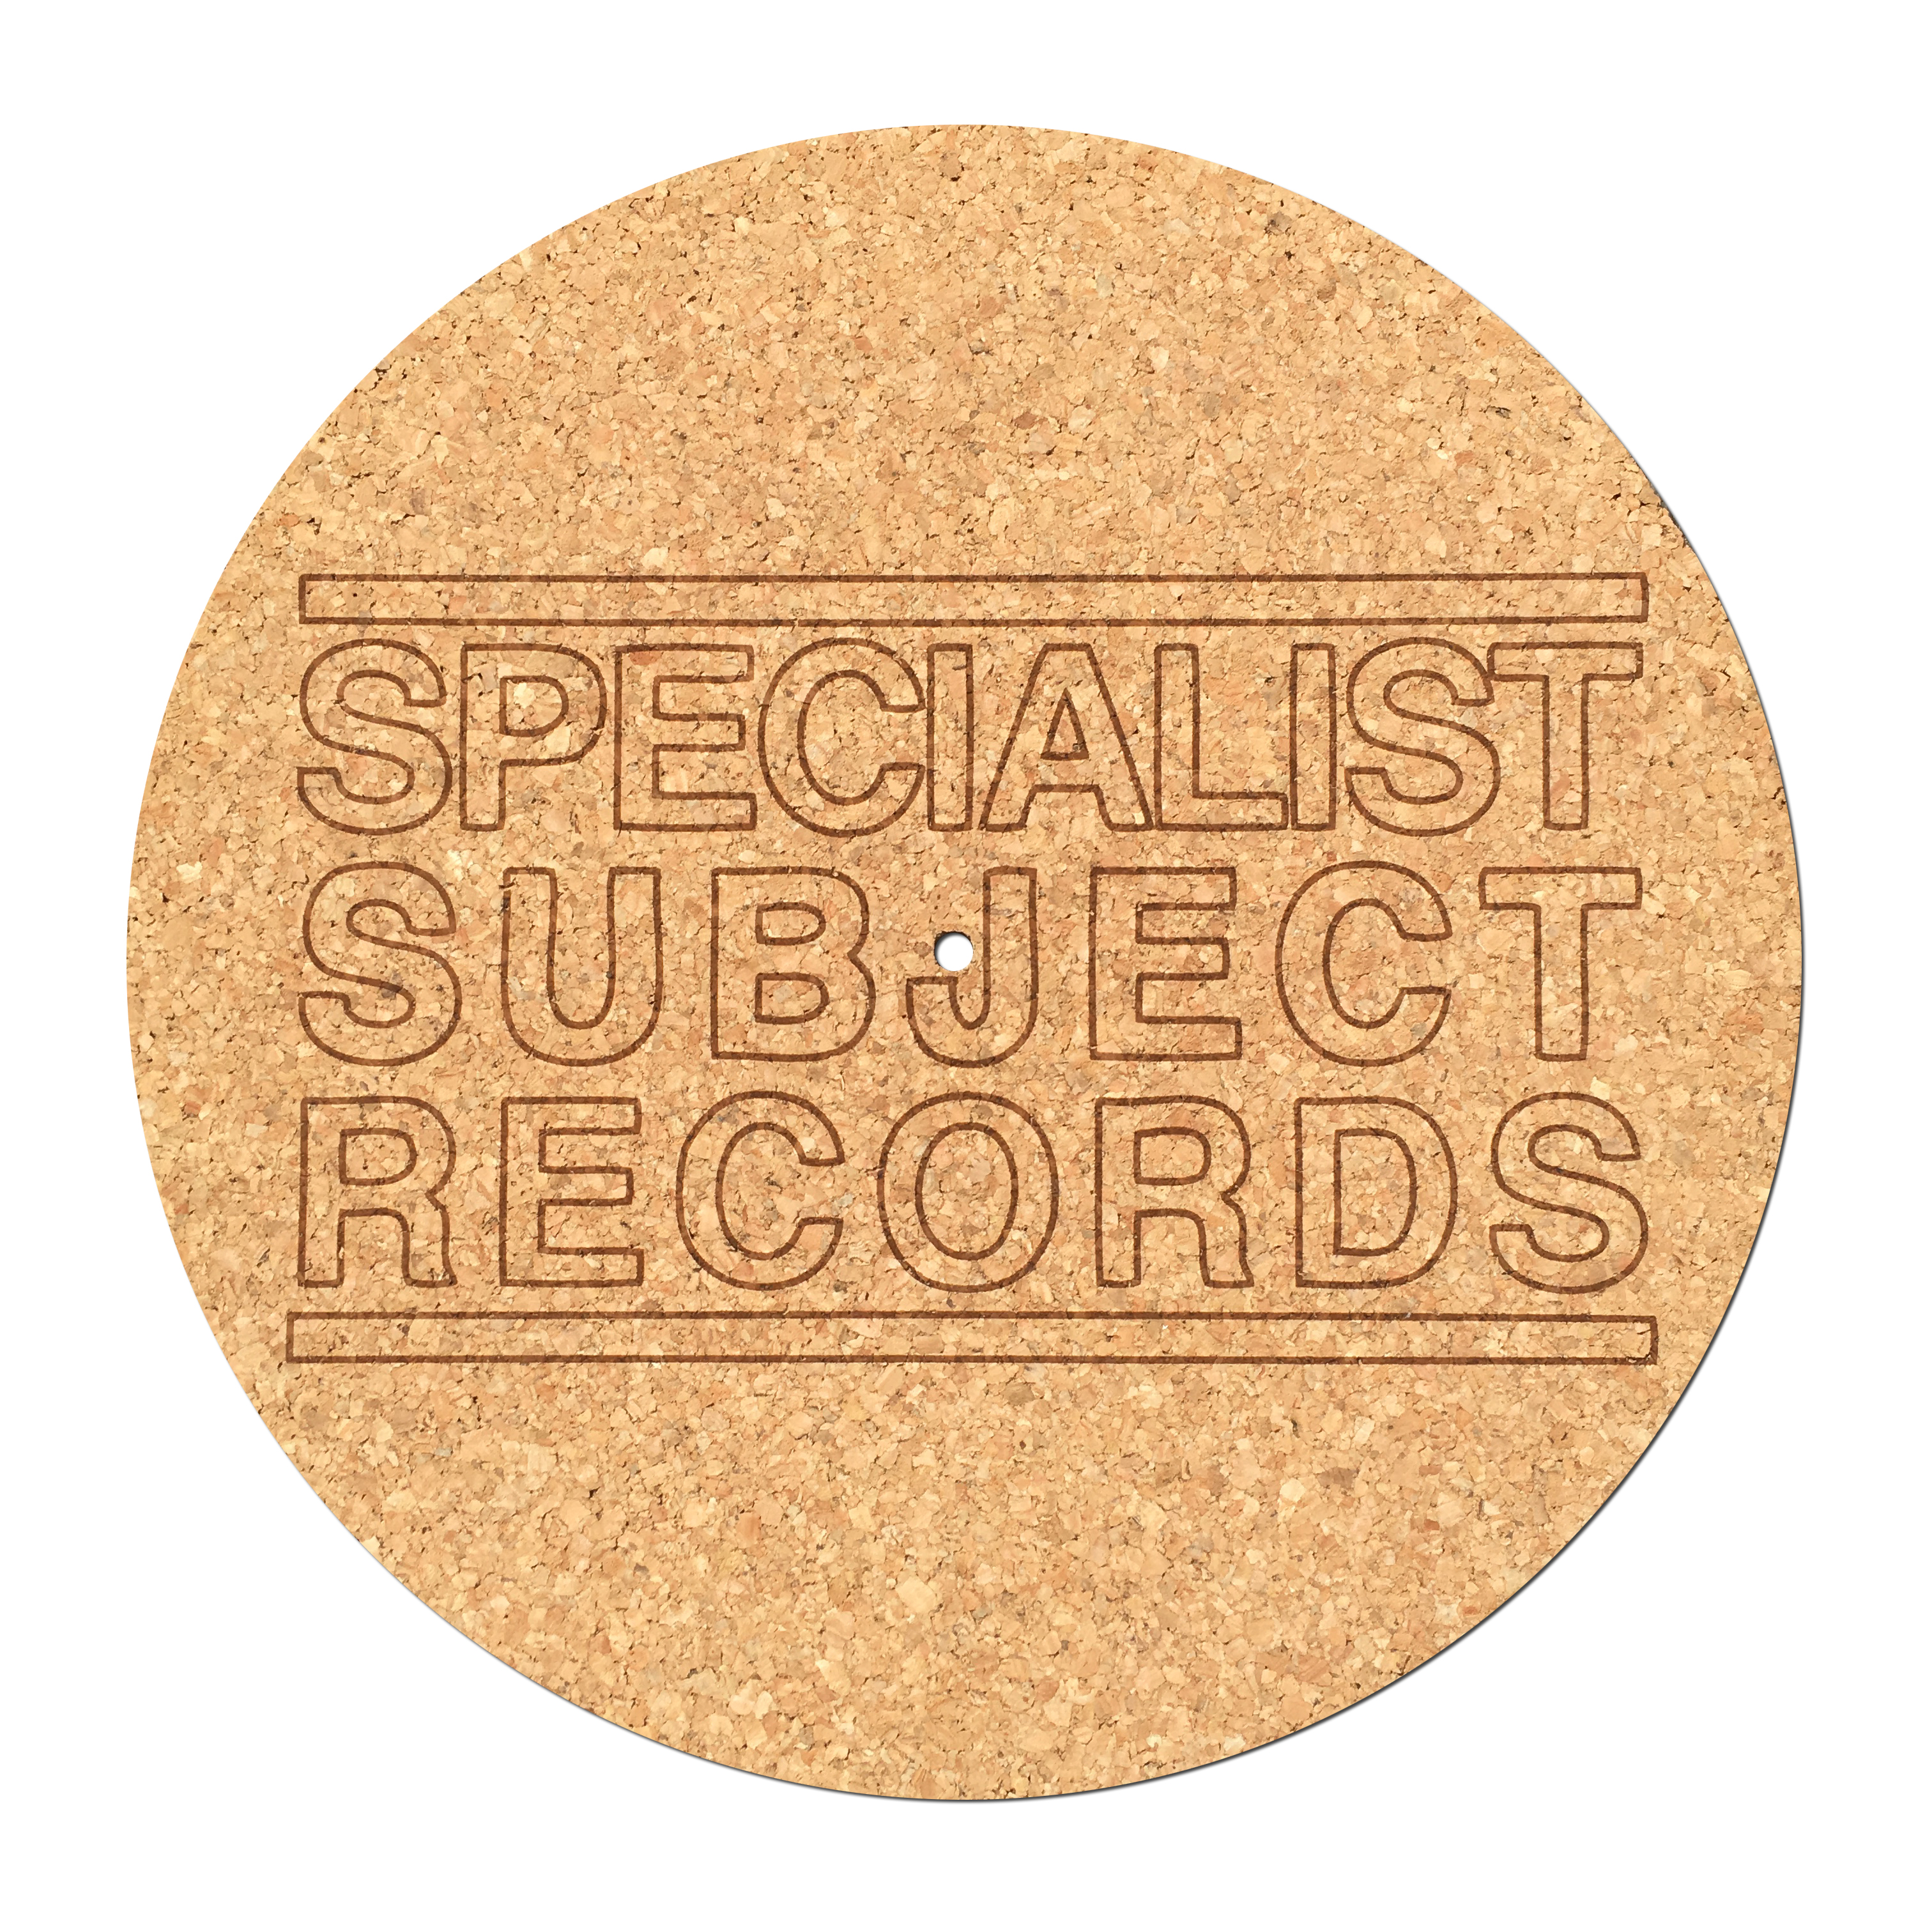 Specialist Subject Cork Slipmat